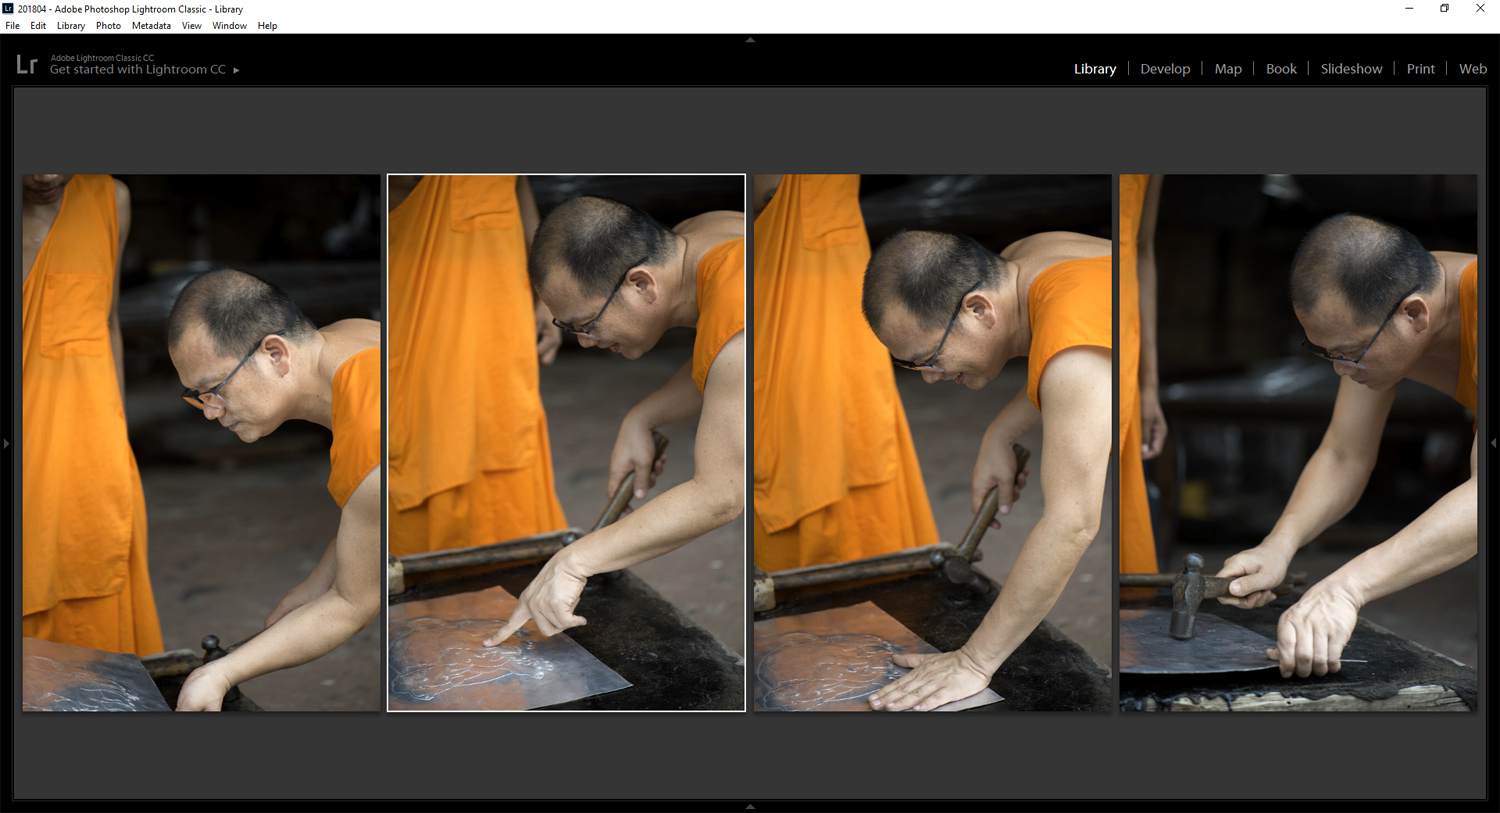 lightroom compare images side by side - Tips for Culling Your Photos